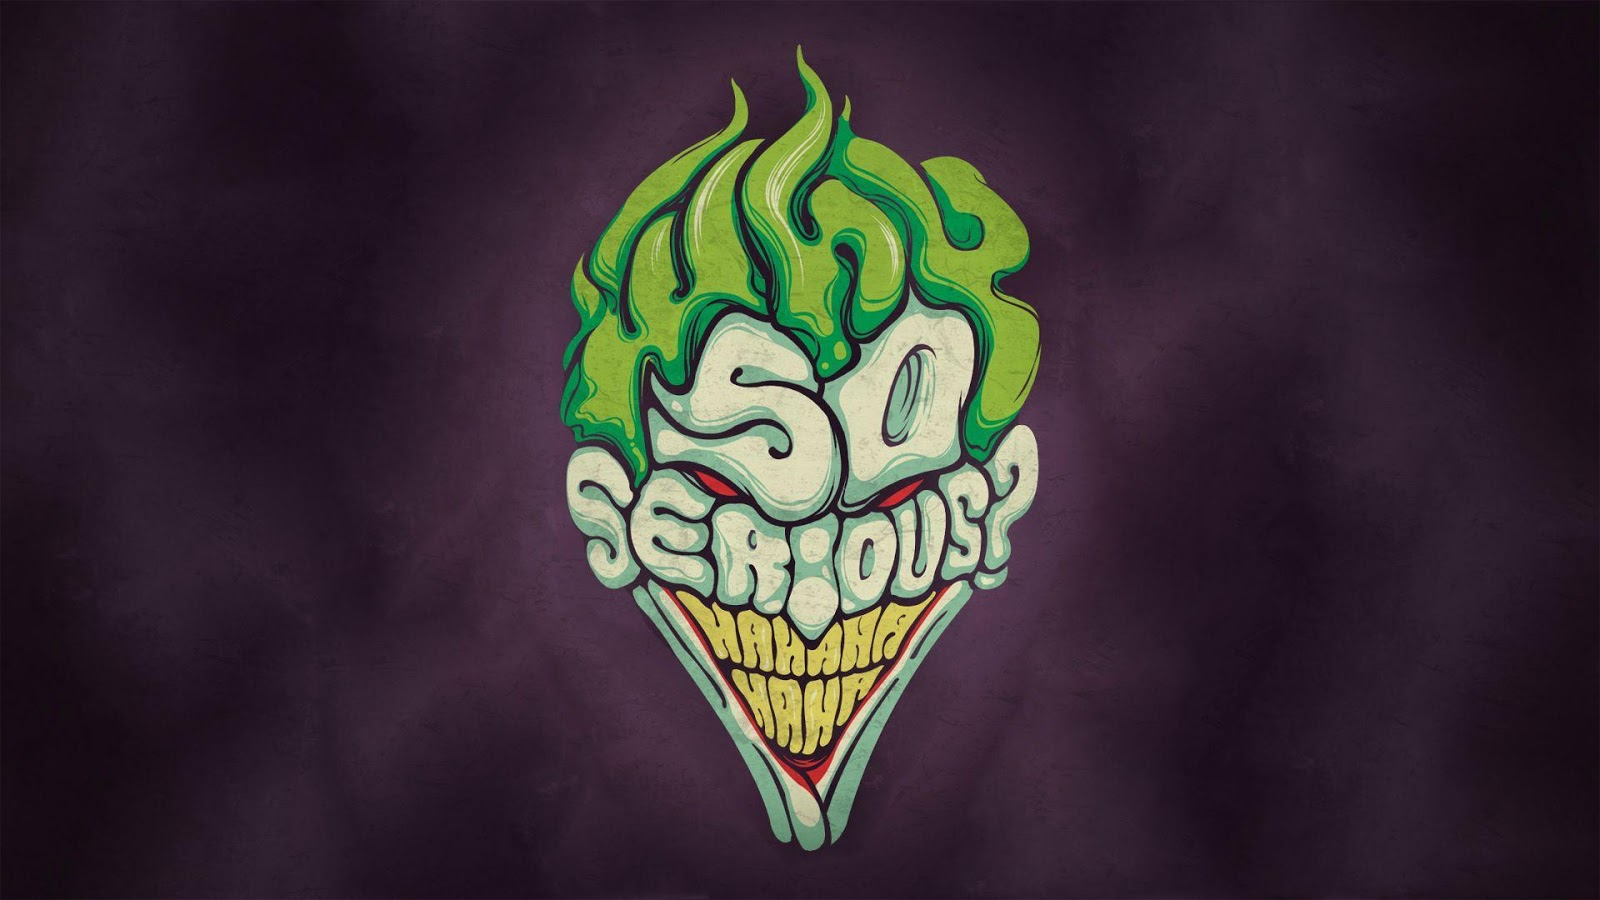 Simple Wallpaper Mac Joker - joker-hd-wallpapers-13  Perfect Image Reference_40774.jpg